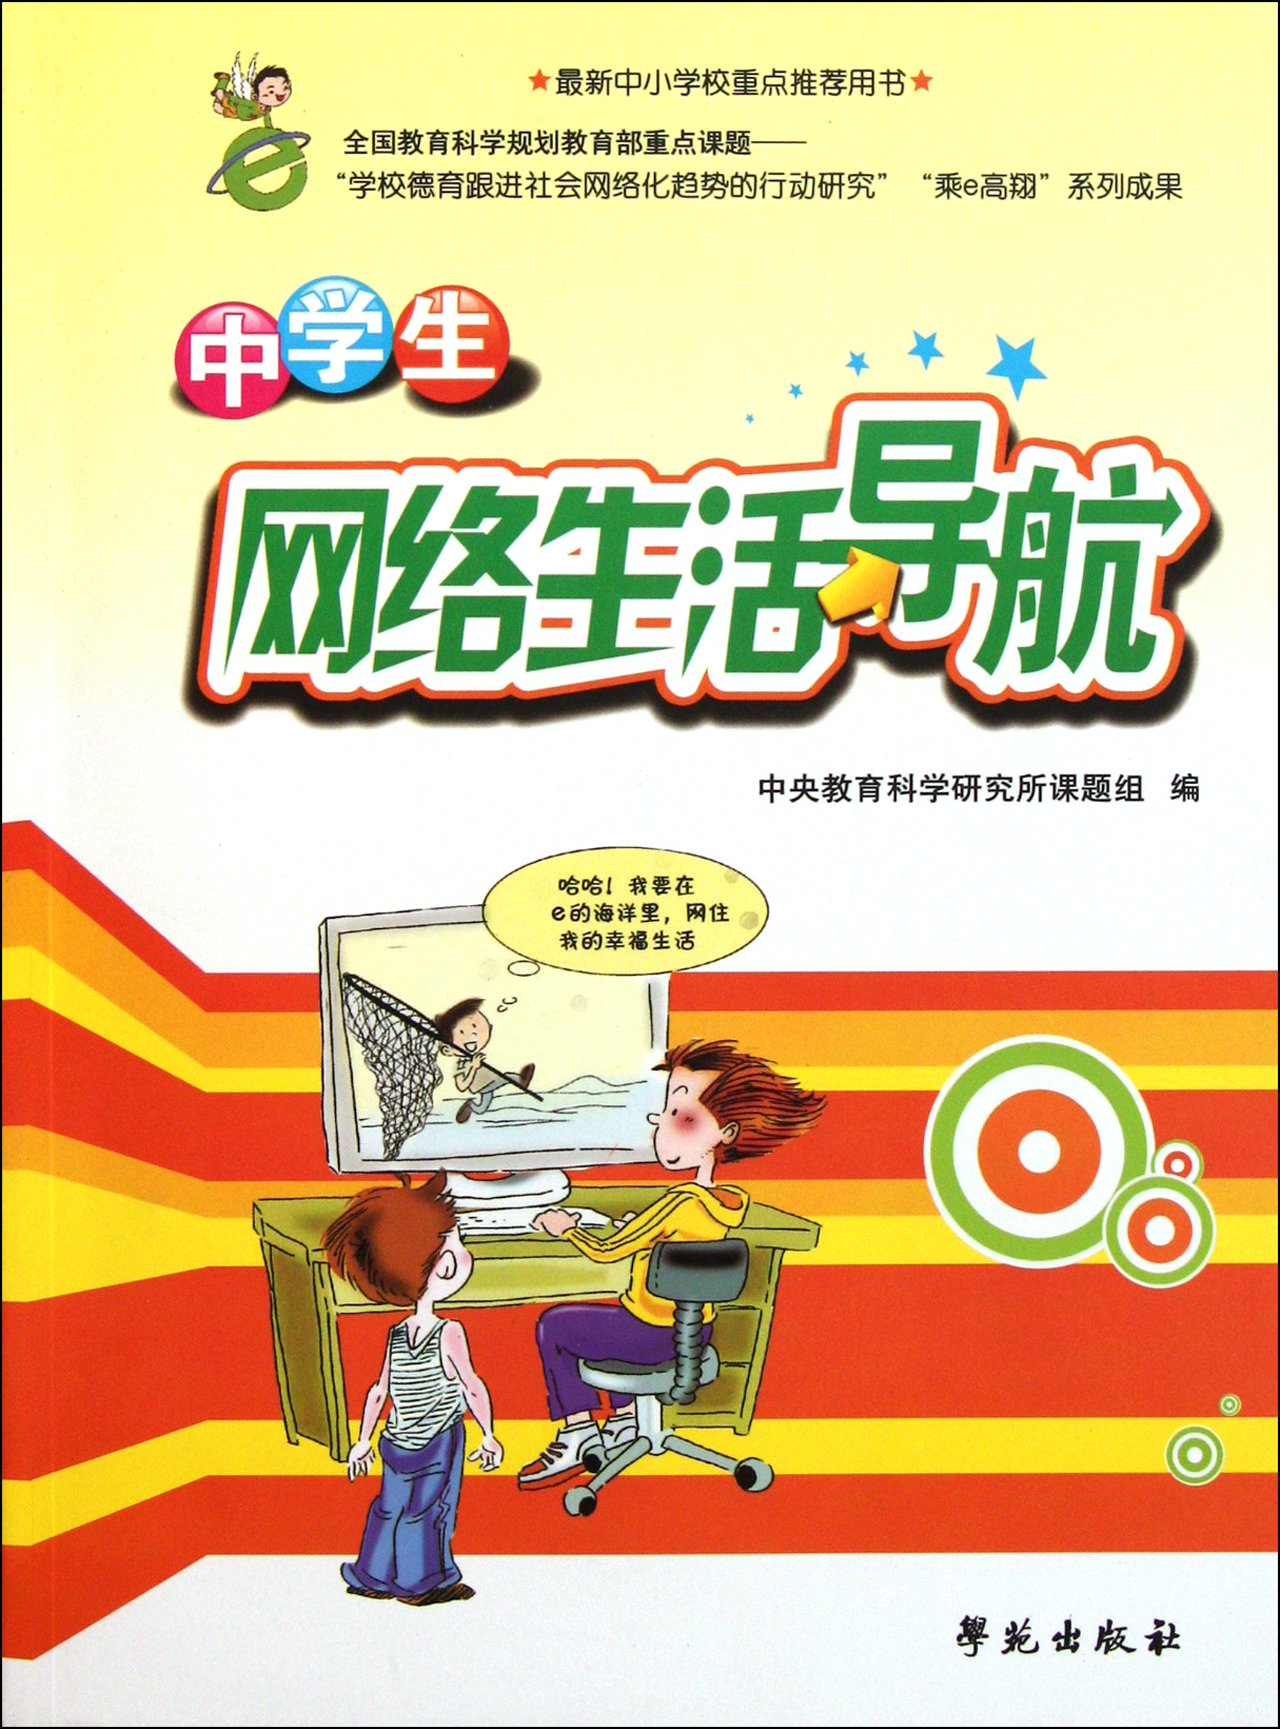 Download Guide to Internet Life of Middle School Students (Chinese Edition) PDF